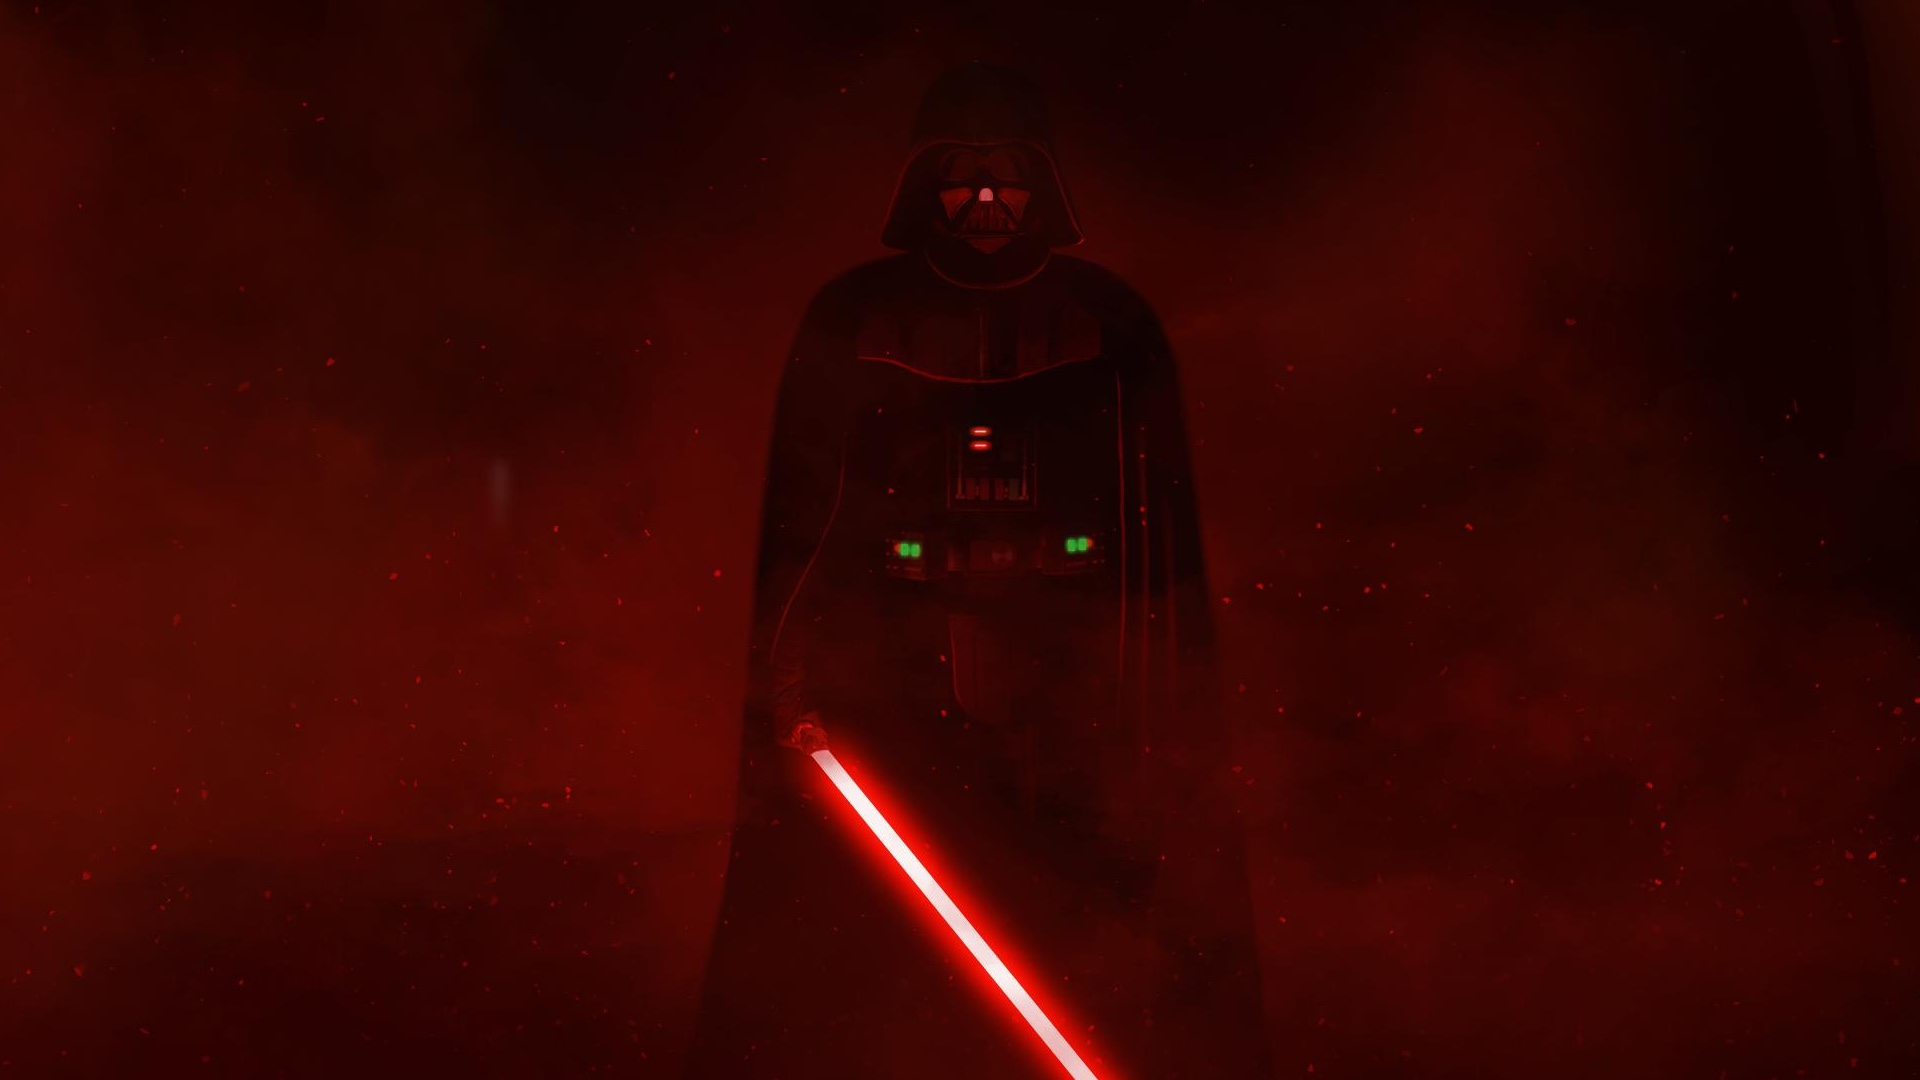 darth-vaders-final-epic-scene-in-rogue-one-was-added-at-the-last-minute